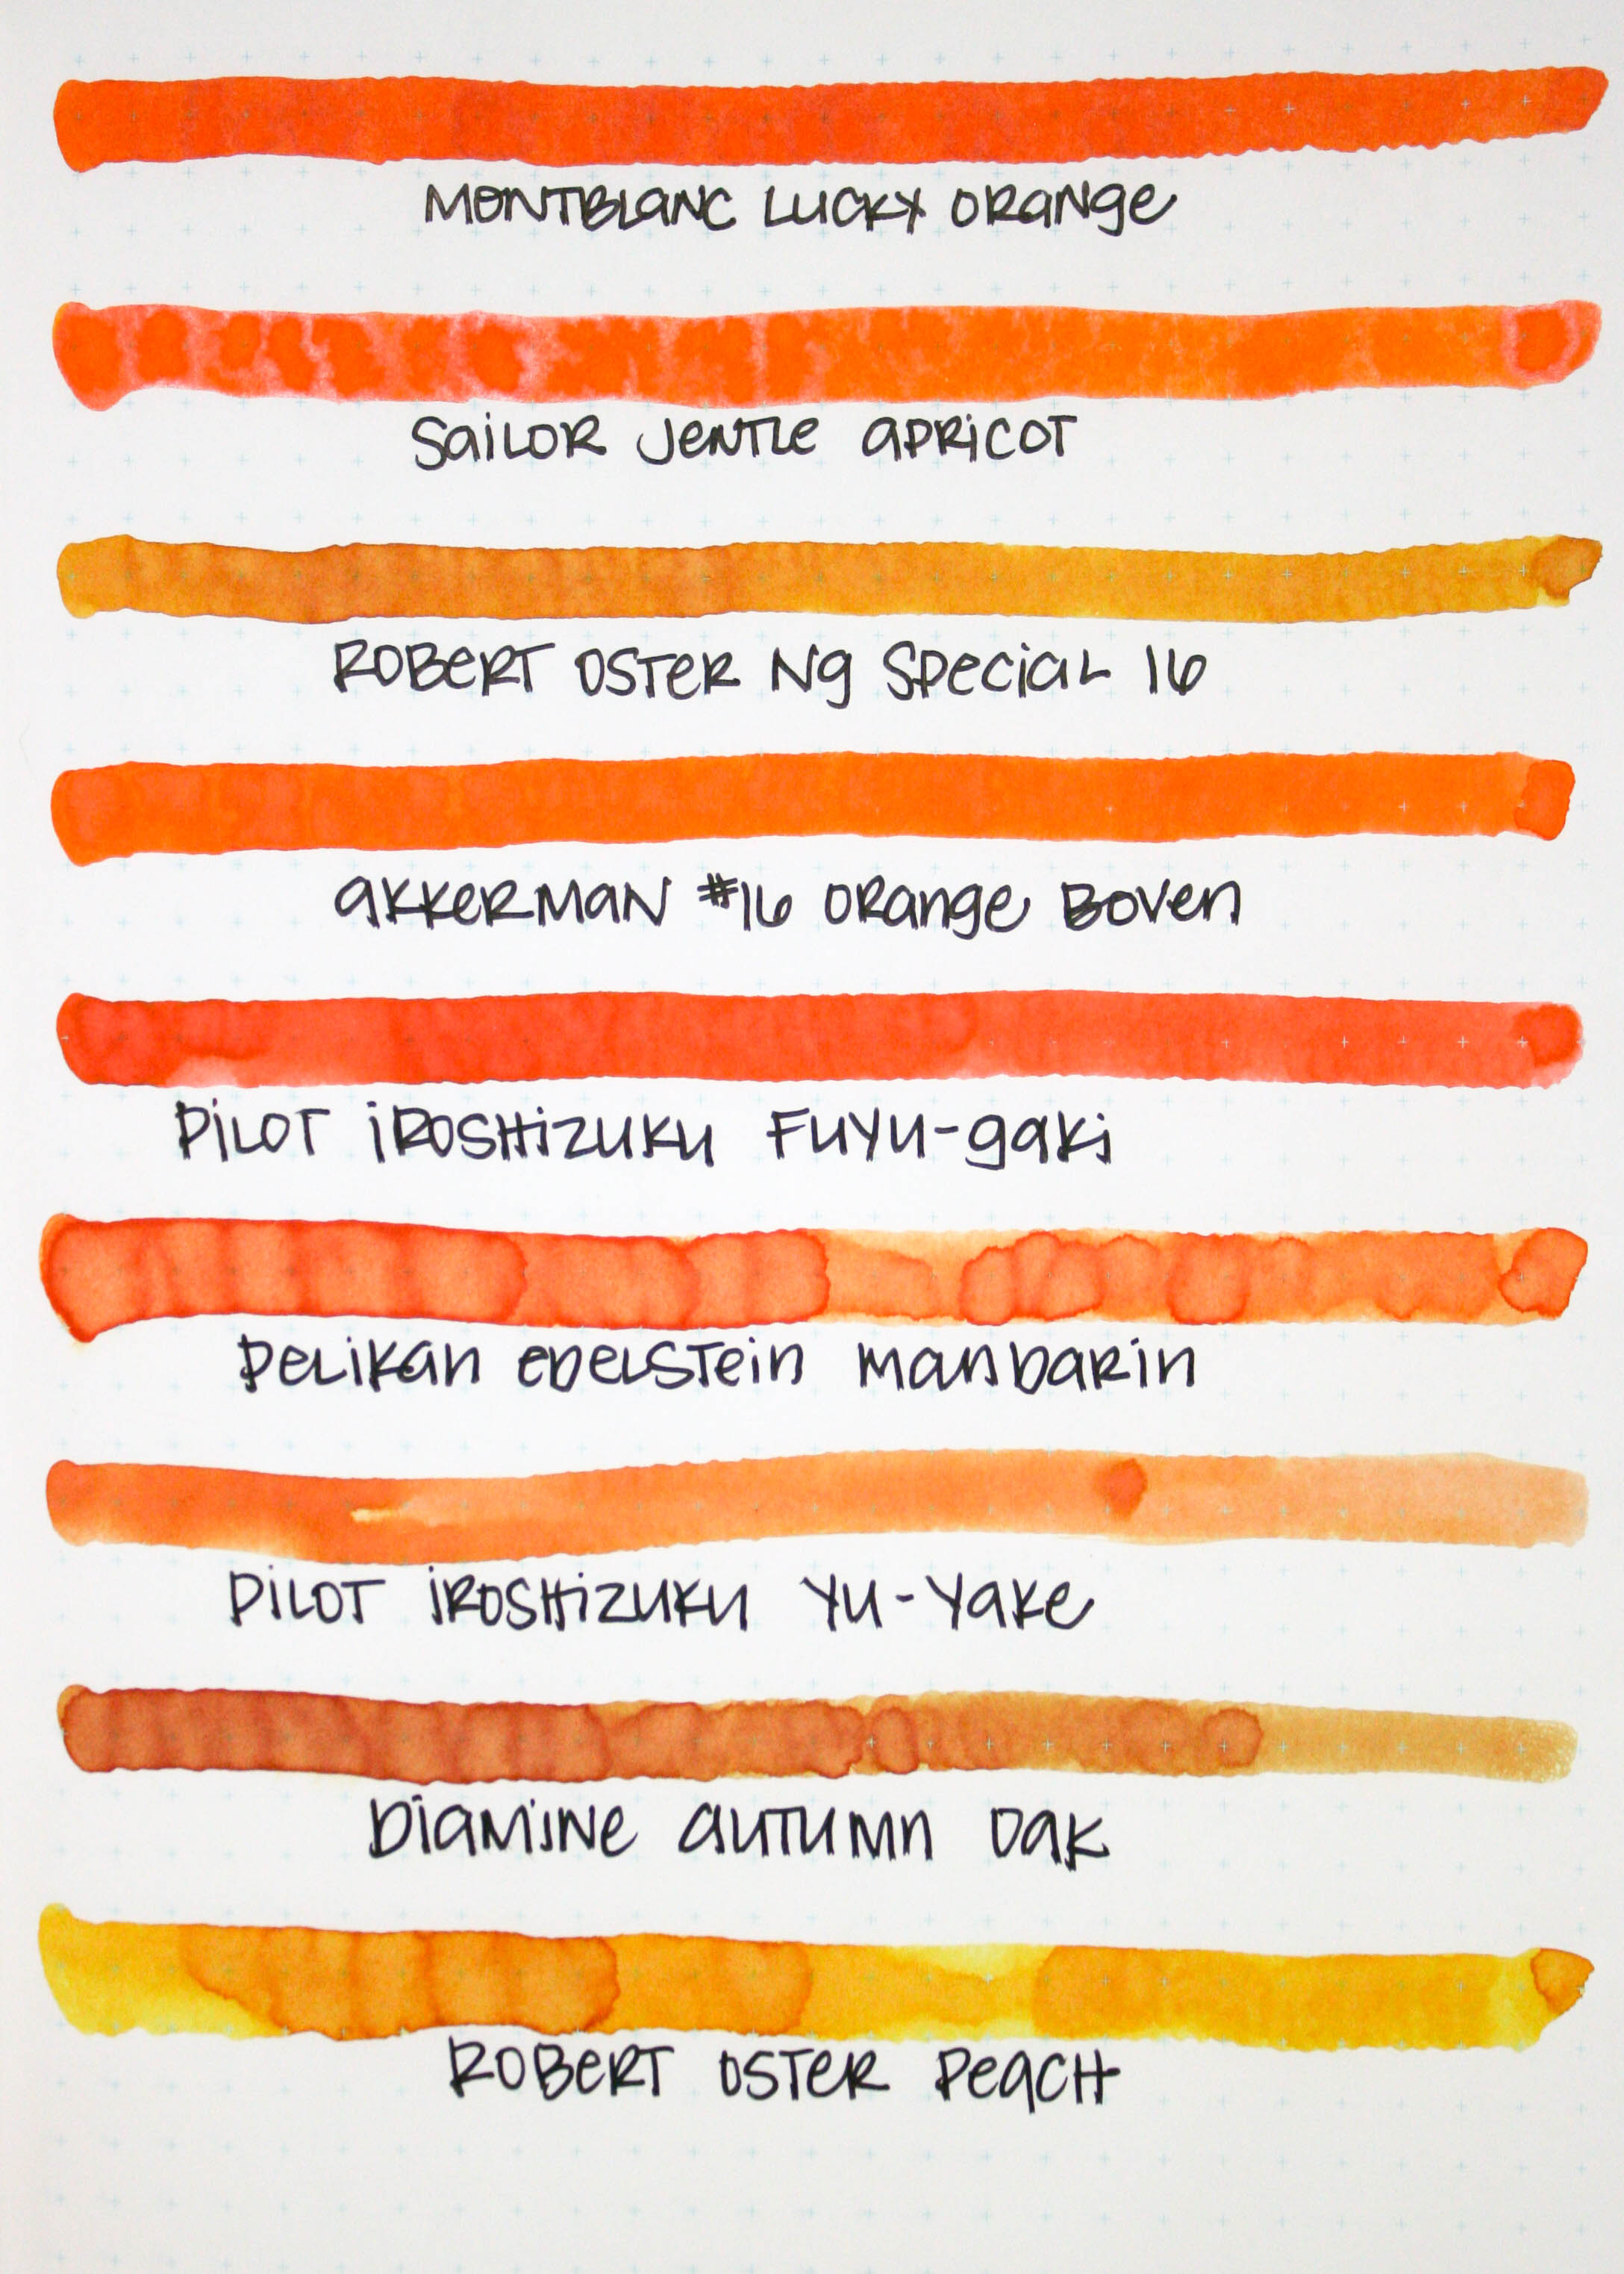 Similar colors...  - Lucky Orange is closest to Pilot Iroshizuku Fuyu-gaki. The Sailor Jentle Apricot is a little too light, and Akkerman's #16 Orange Boven is more of a true orange than red-orange.